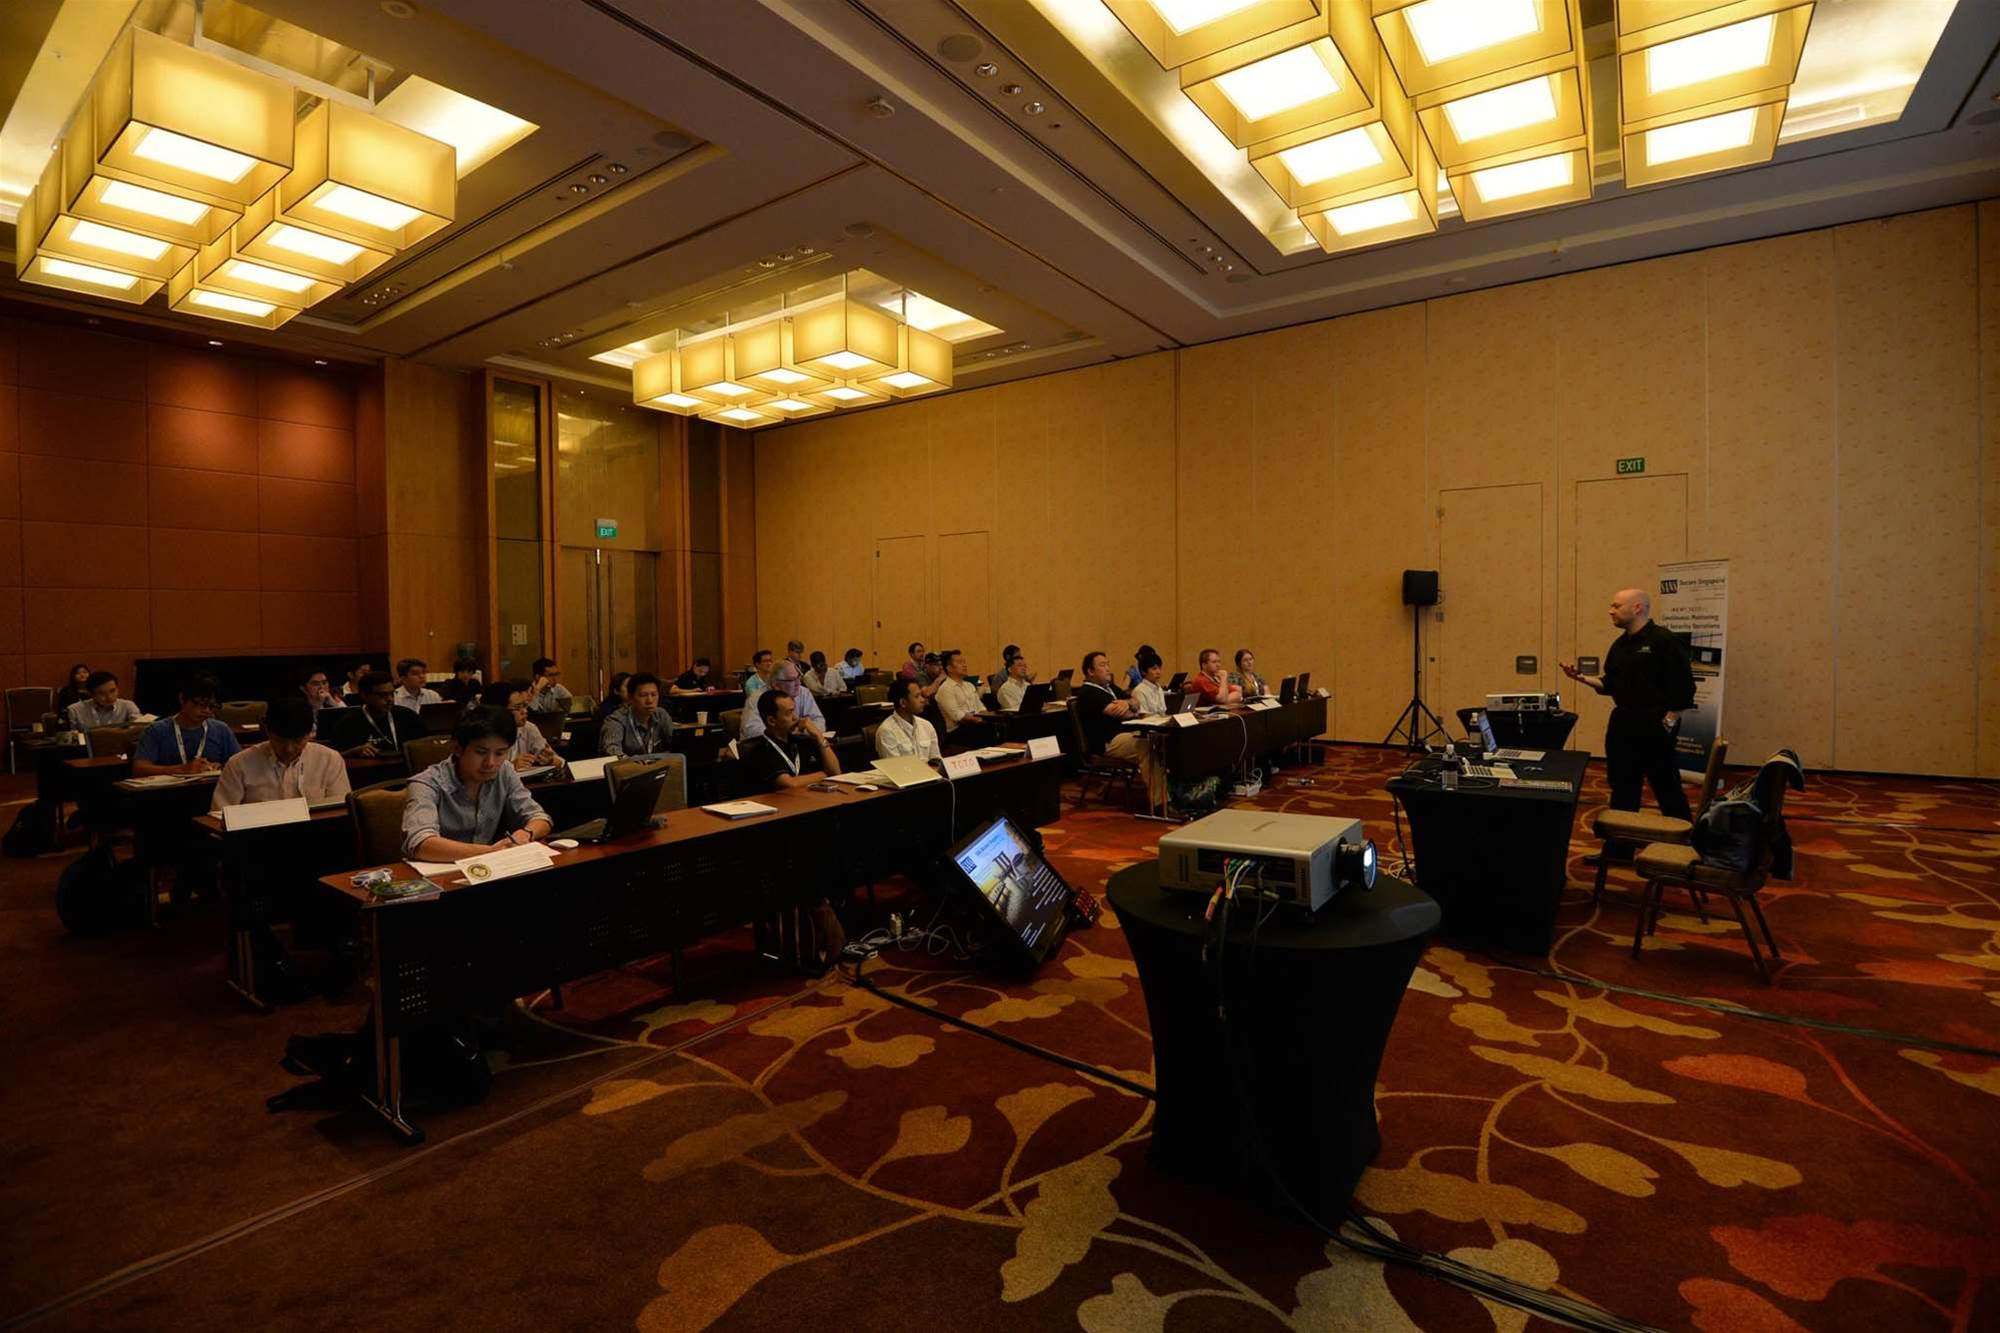 Photos: RSA's 2014 Asia Pacific conference